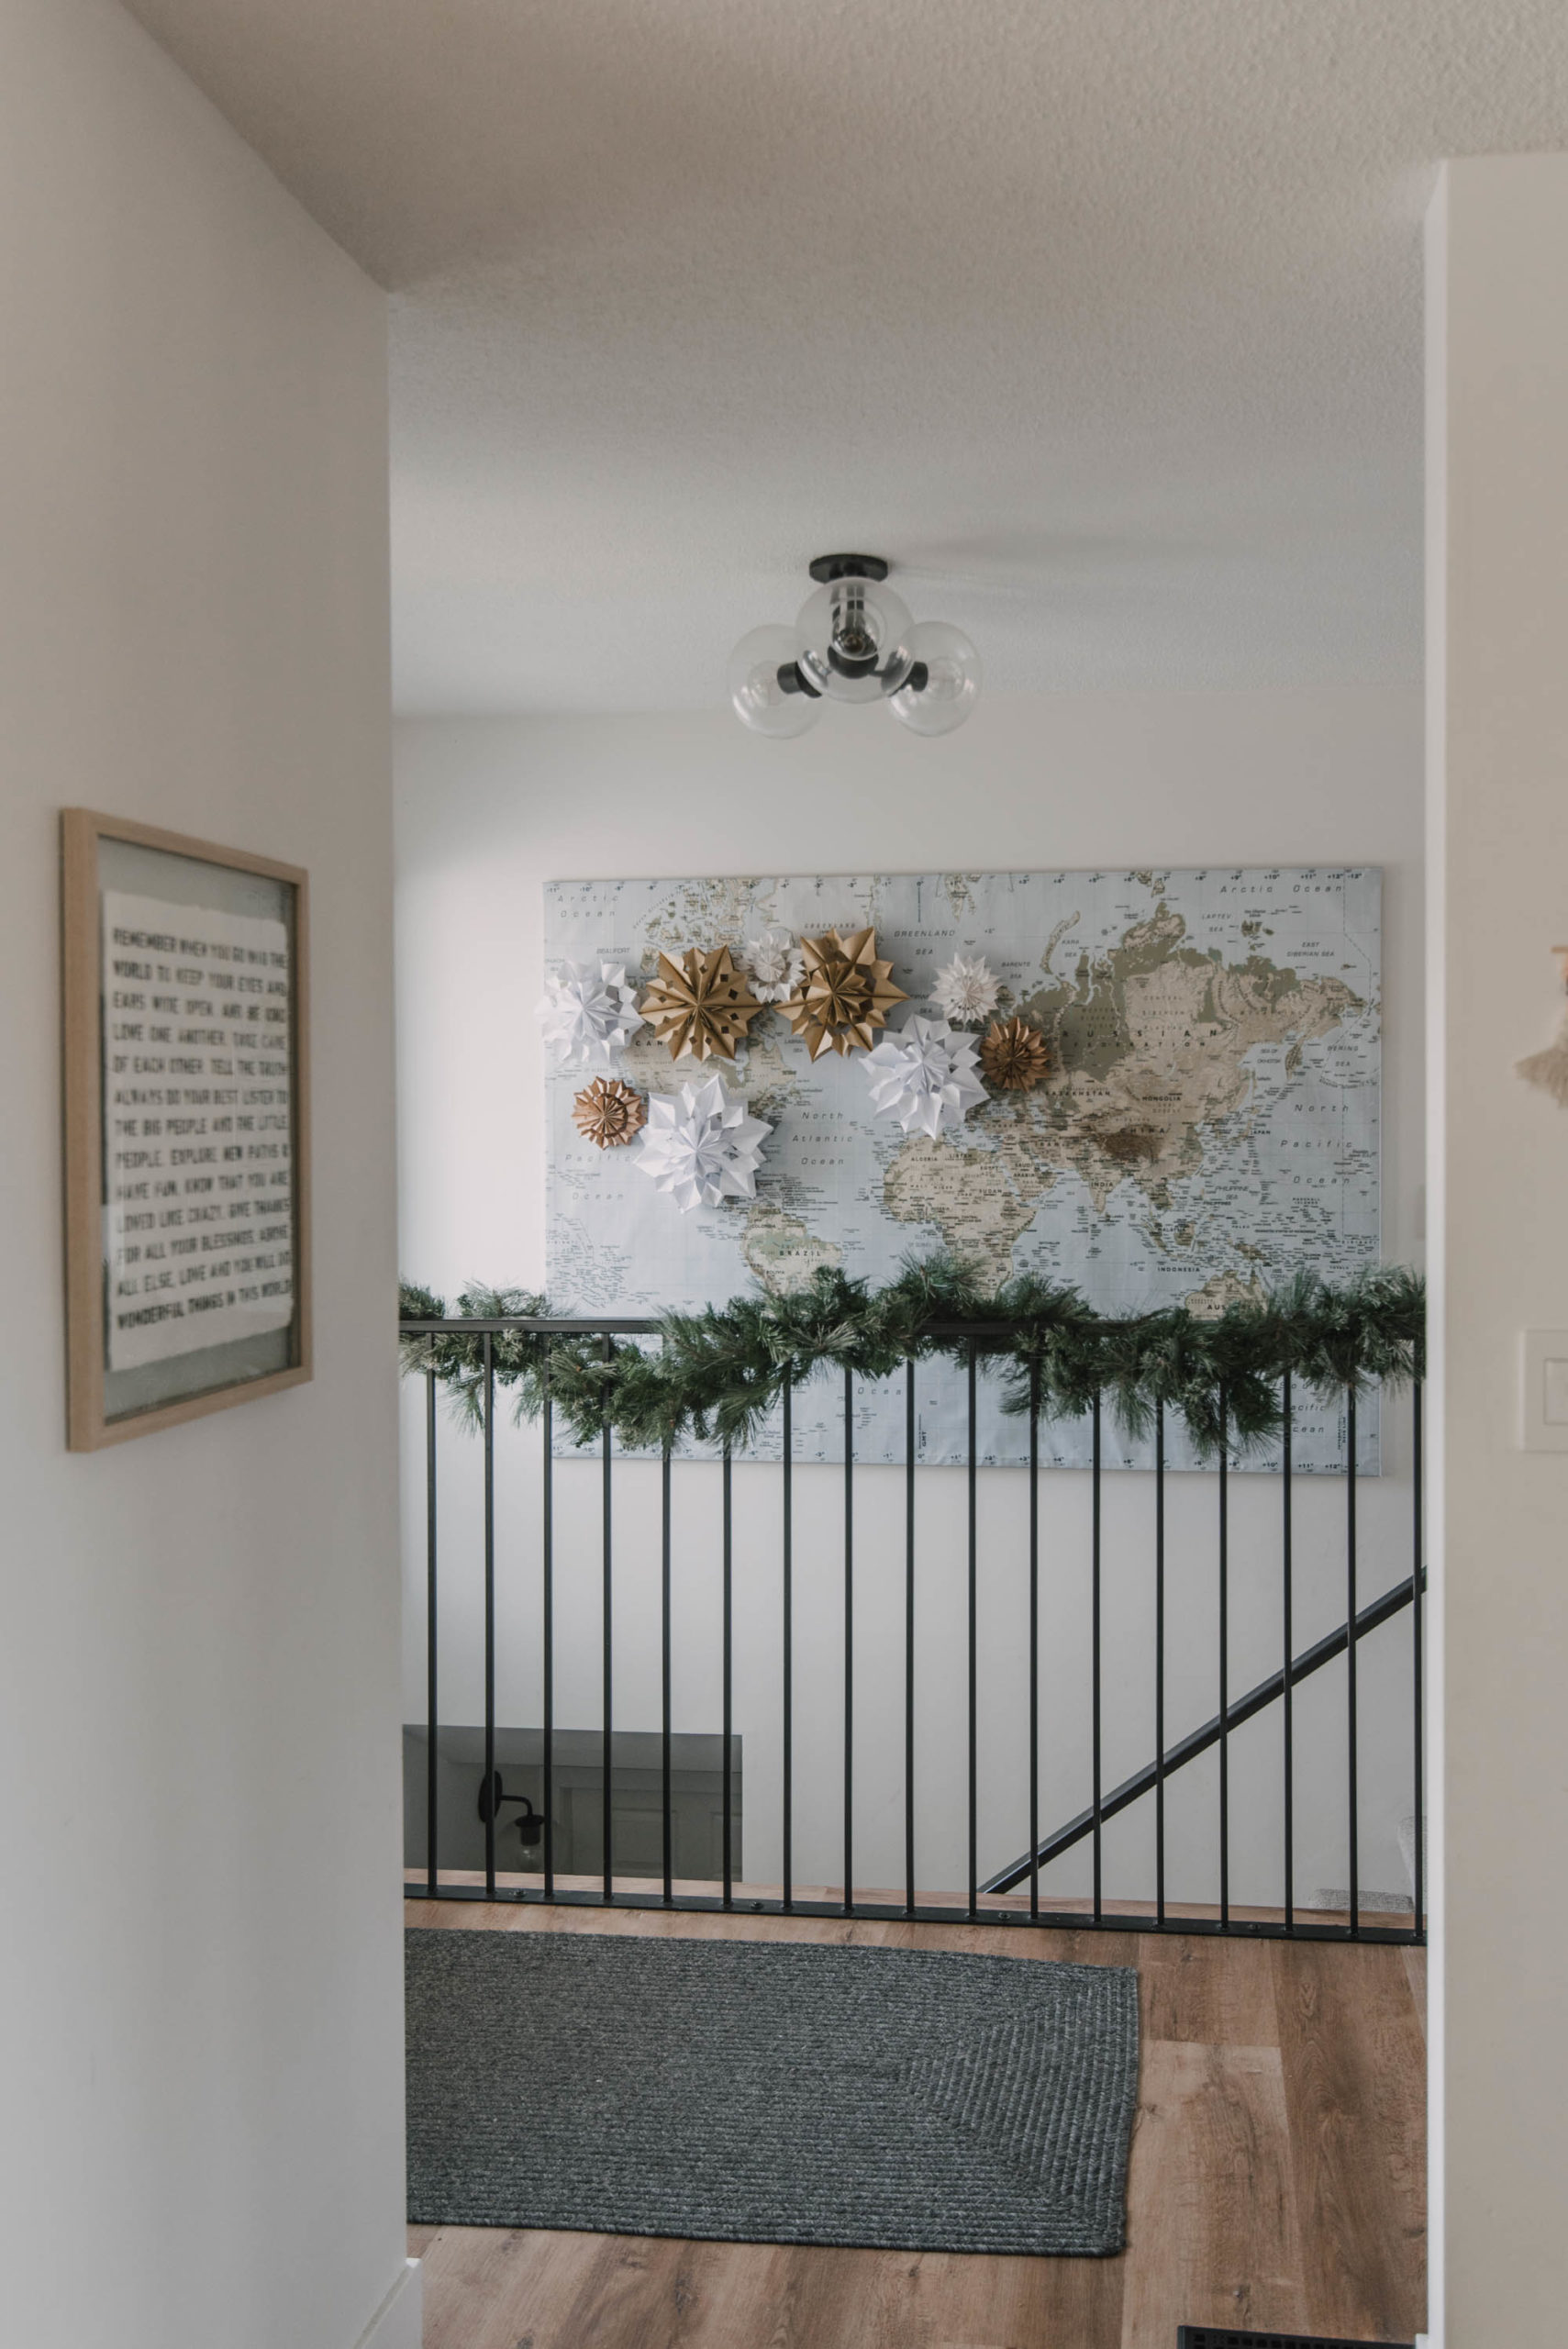 Paper Bag Snowflakes Installation